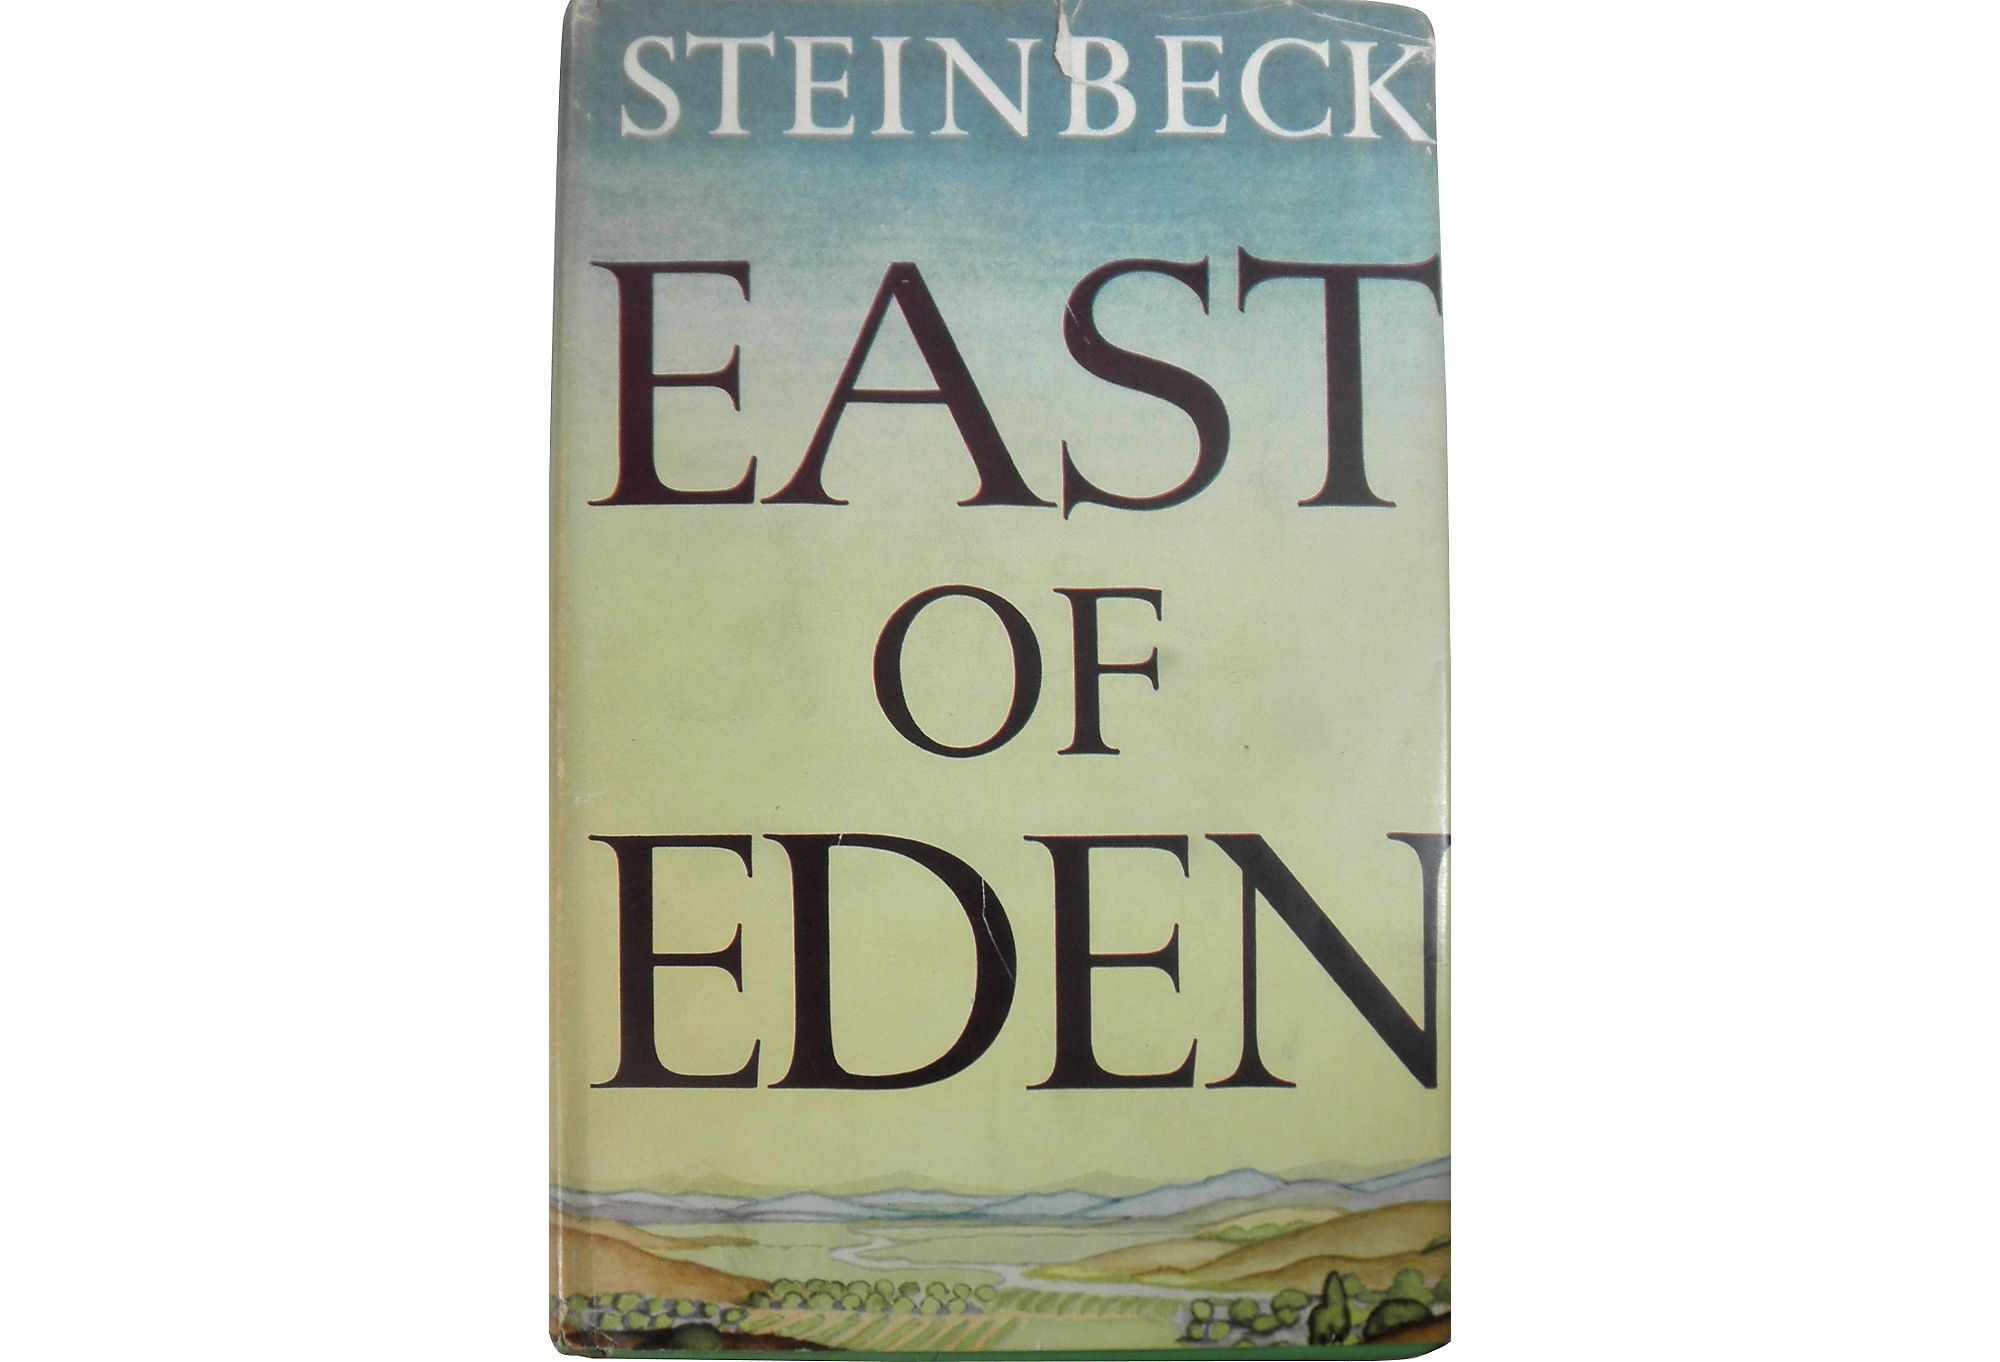 East of Eden by John Steinbeck. A literary classic